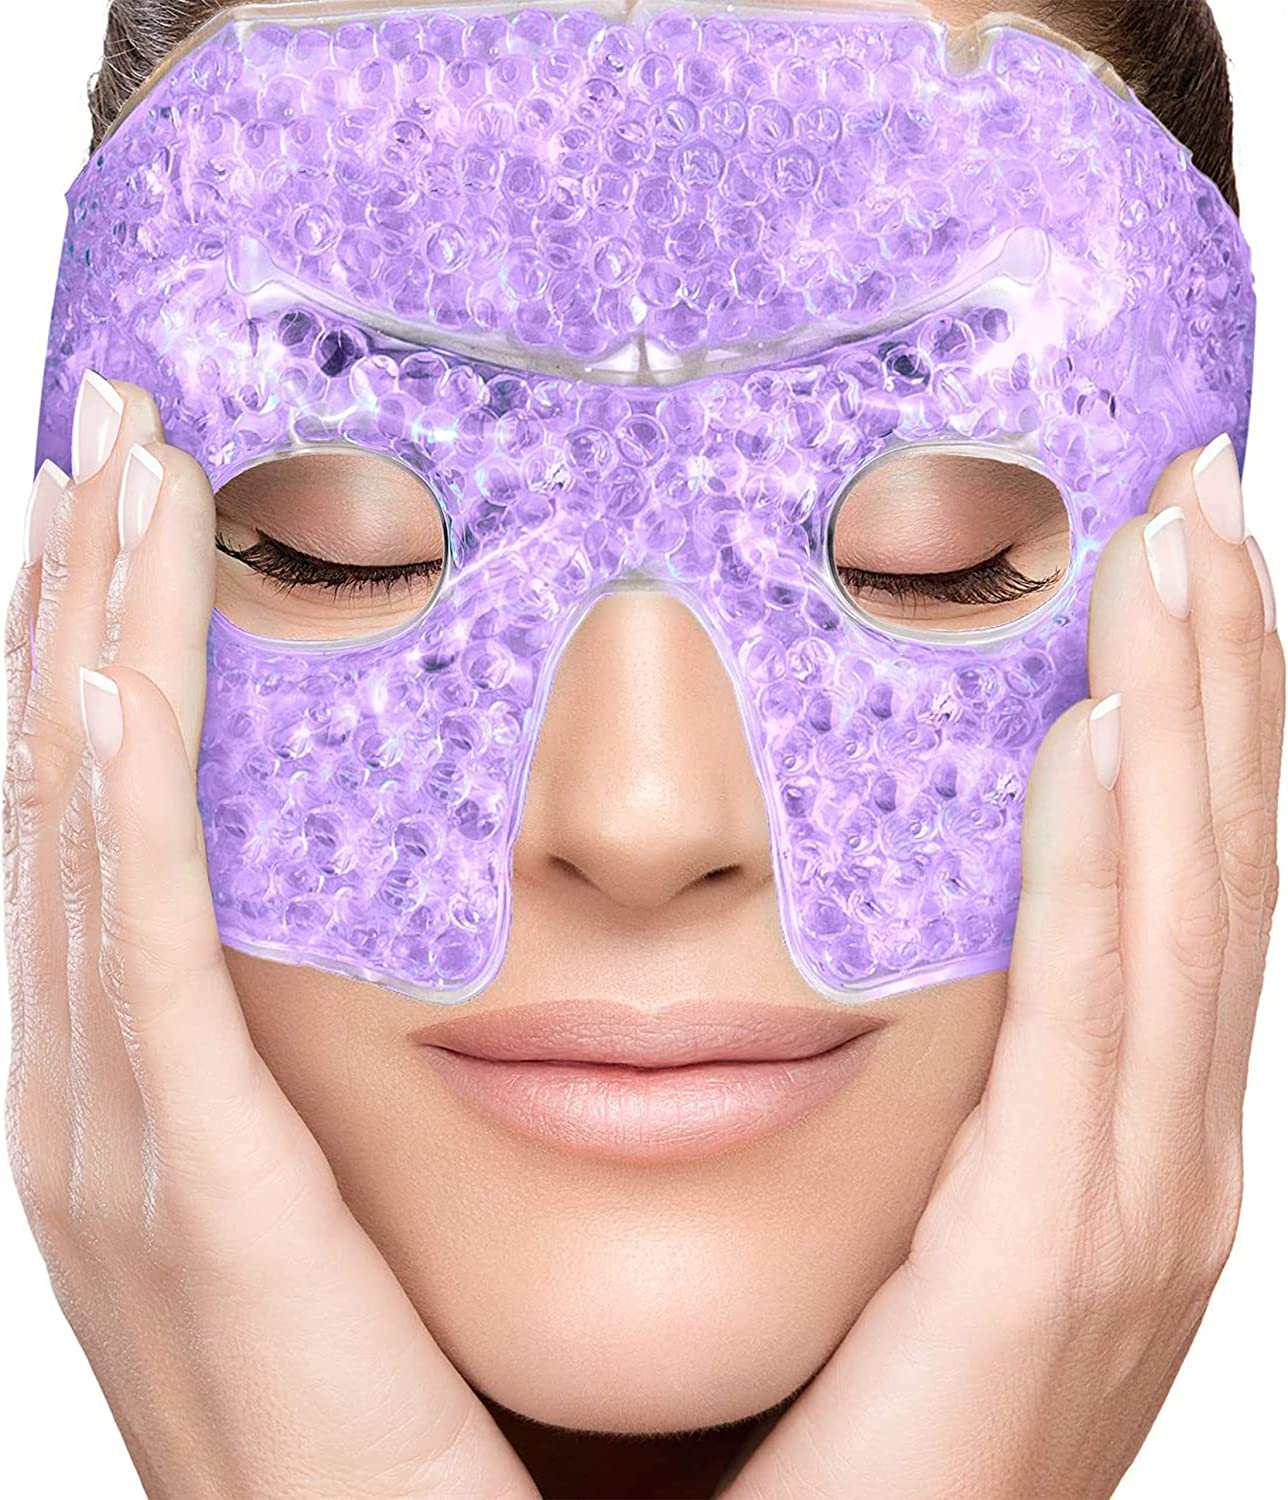 PerfeCore Eye Mask Get Finally resale start Rid of security Puffy Relief Eyes Sleepi Migraine